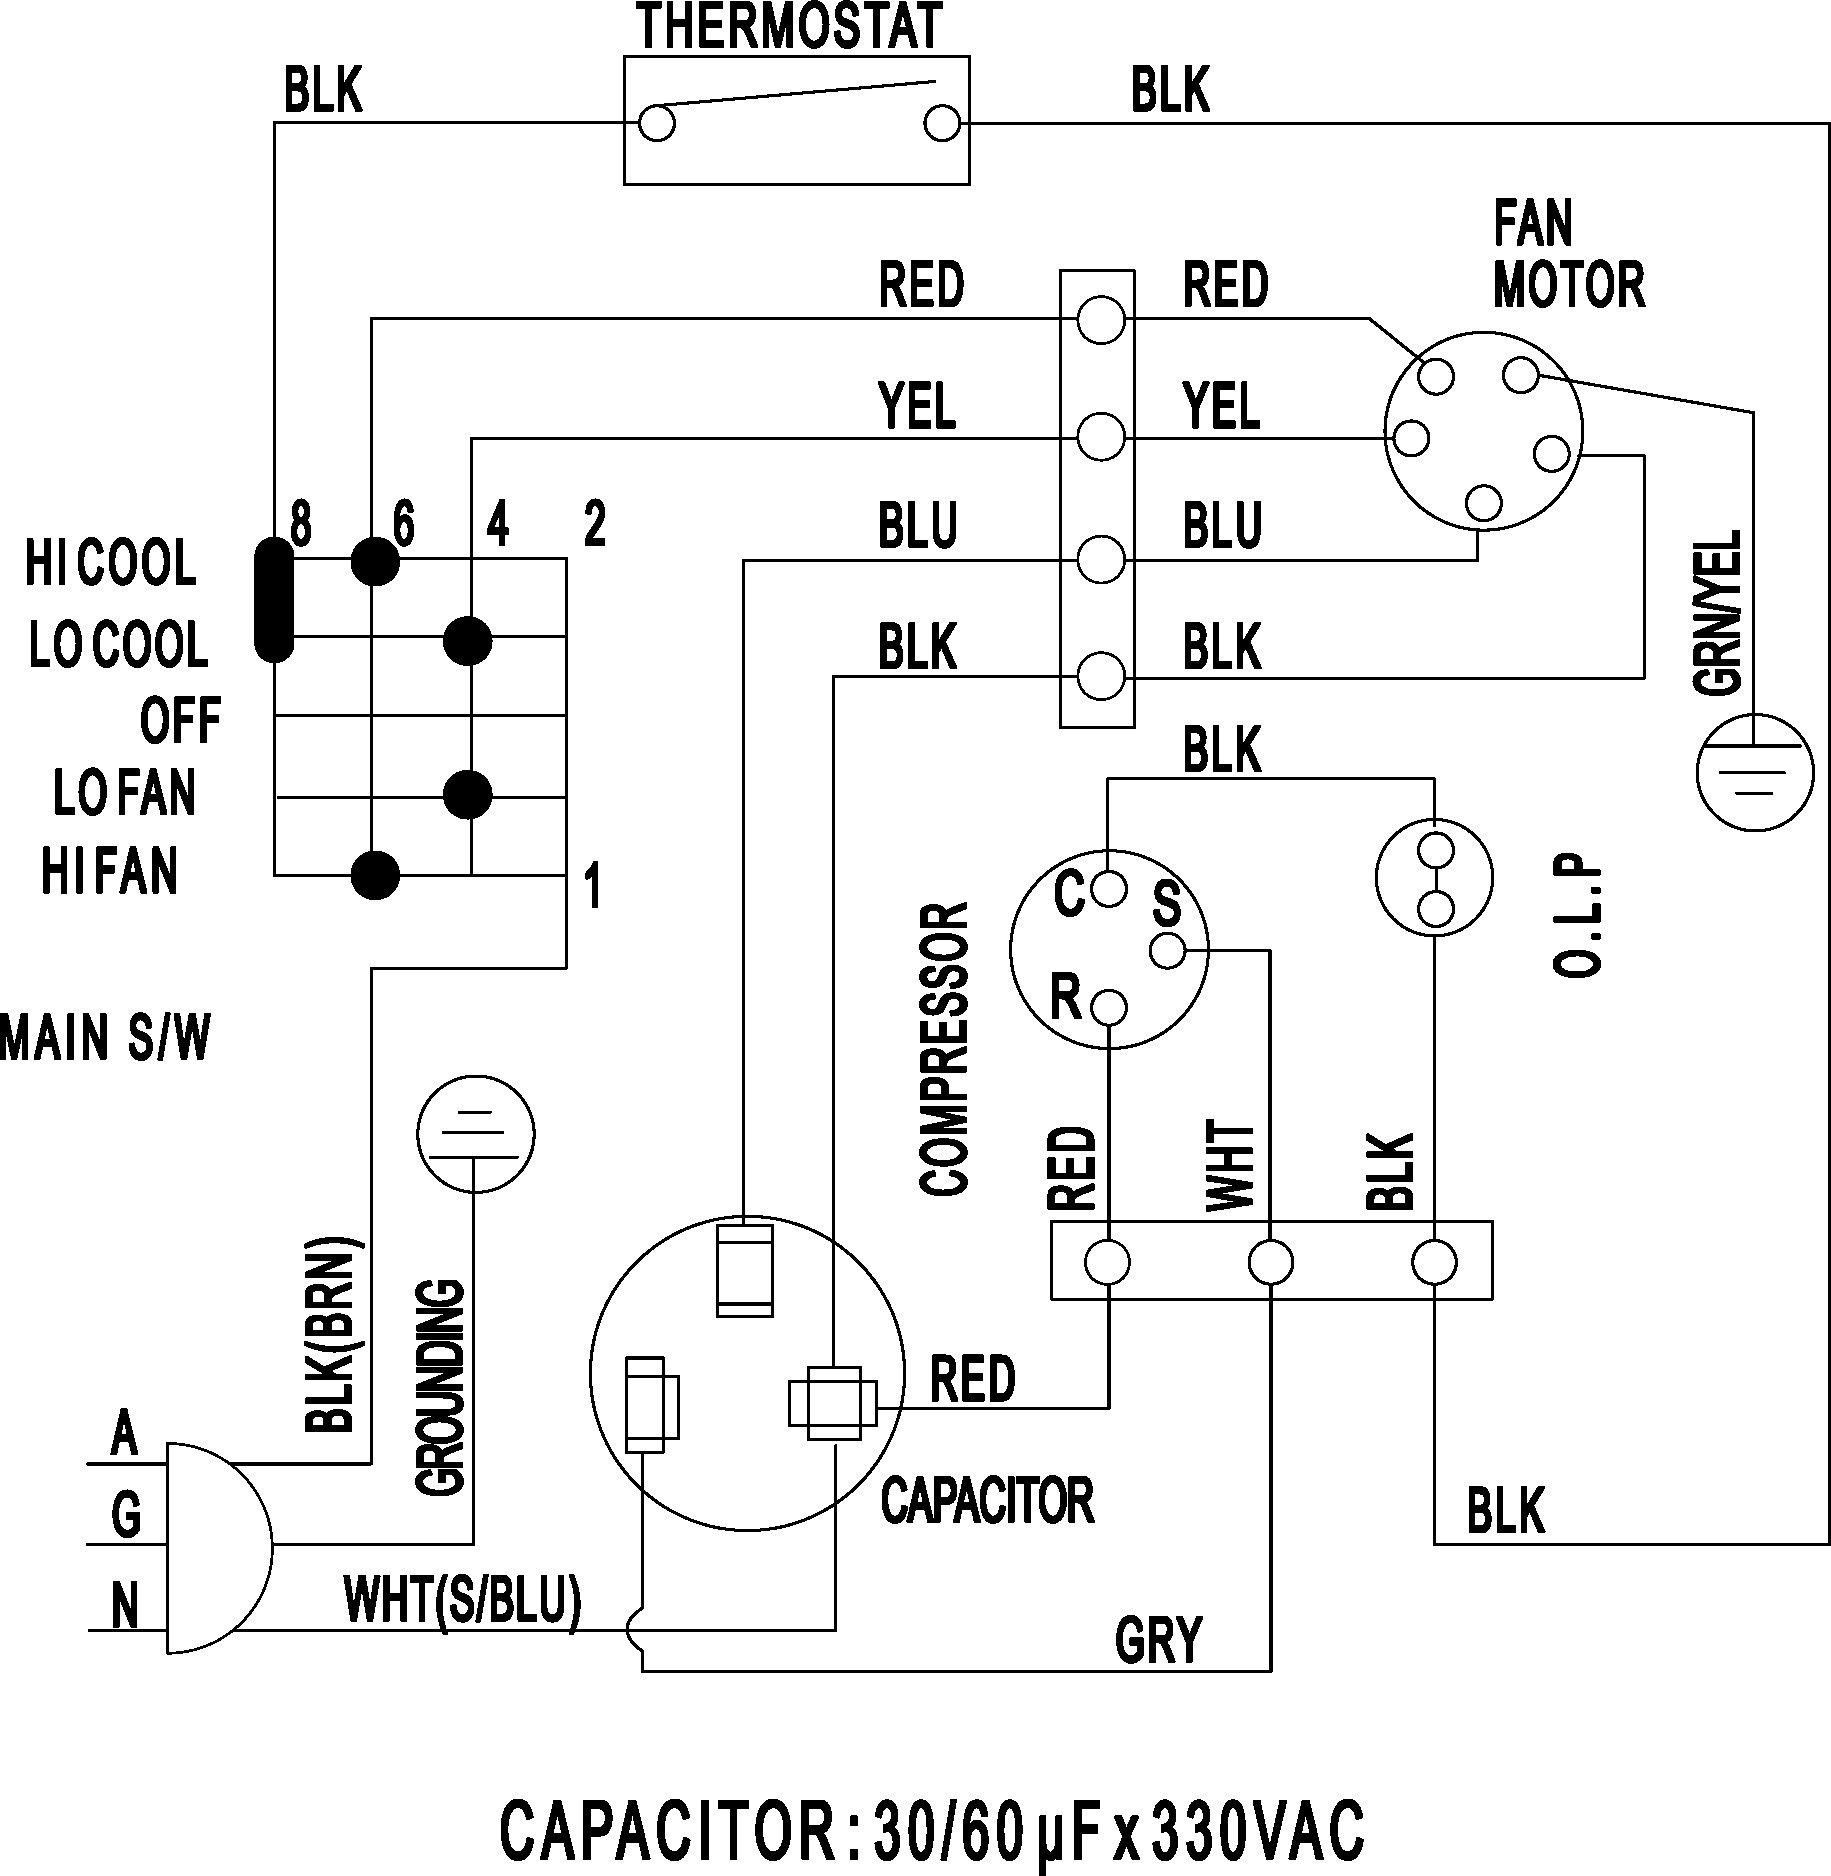 hight resolution of unique fan relay wiring diagram hvac diagram diagramsample diagramtemplate wiringdiagram diagramchart worksheet worksheettemplate